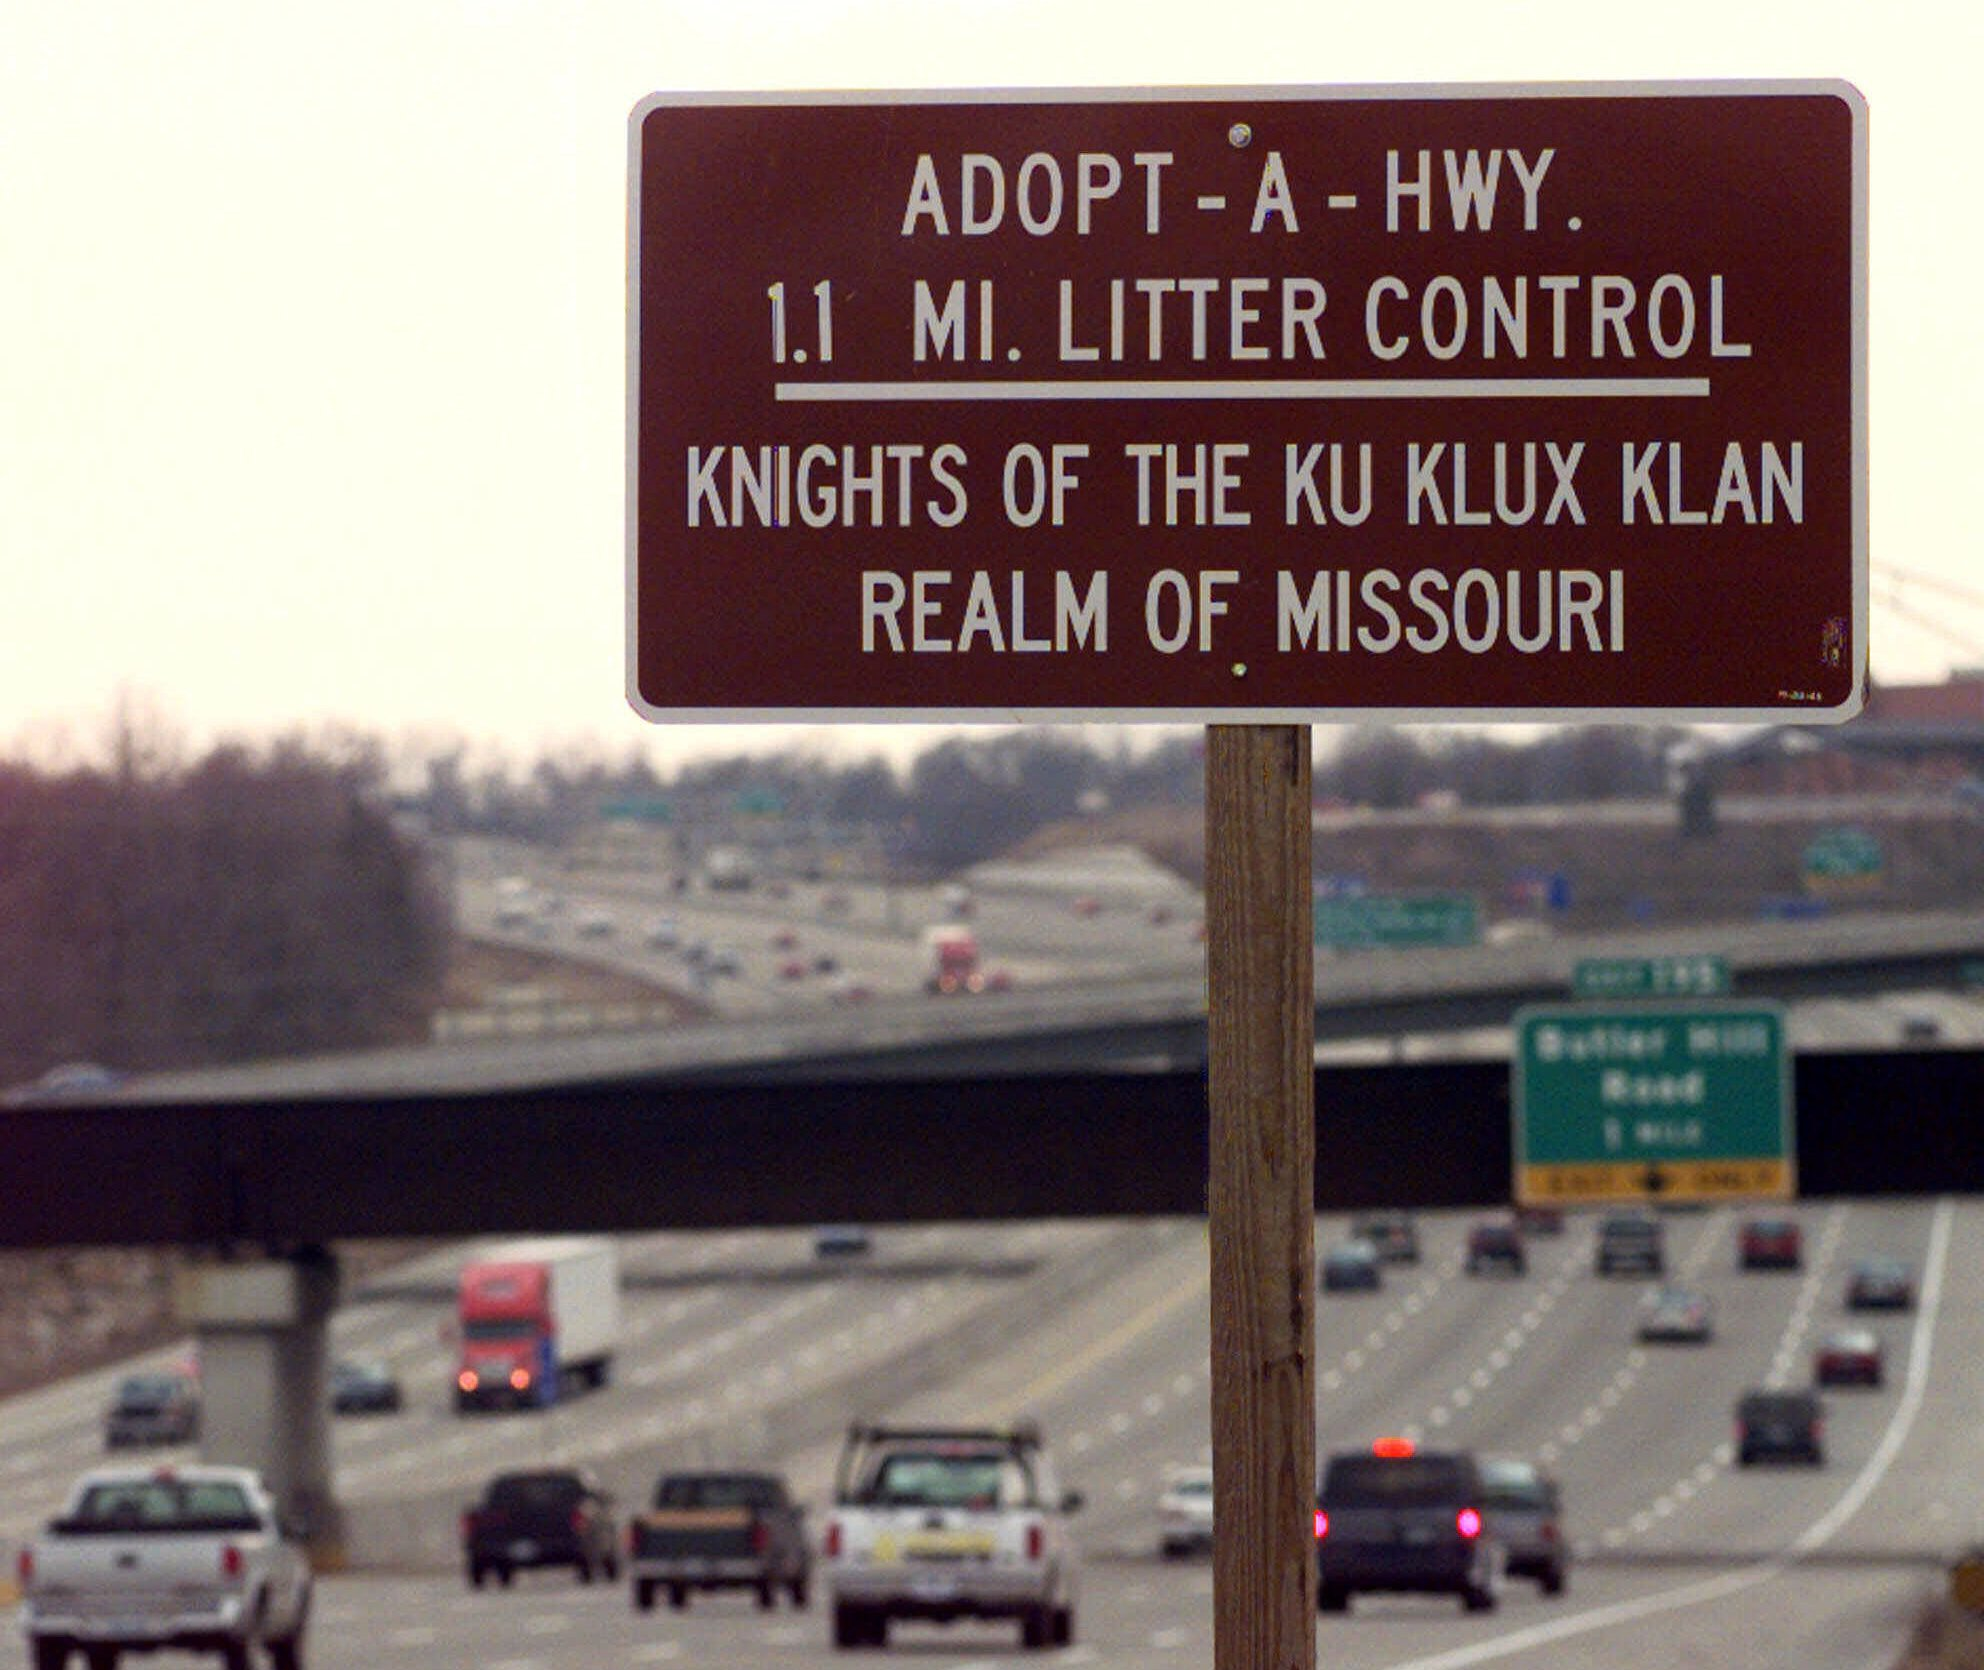 Highway adopted by KK,Interstate 55 south of St. Louis, Missouri